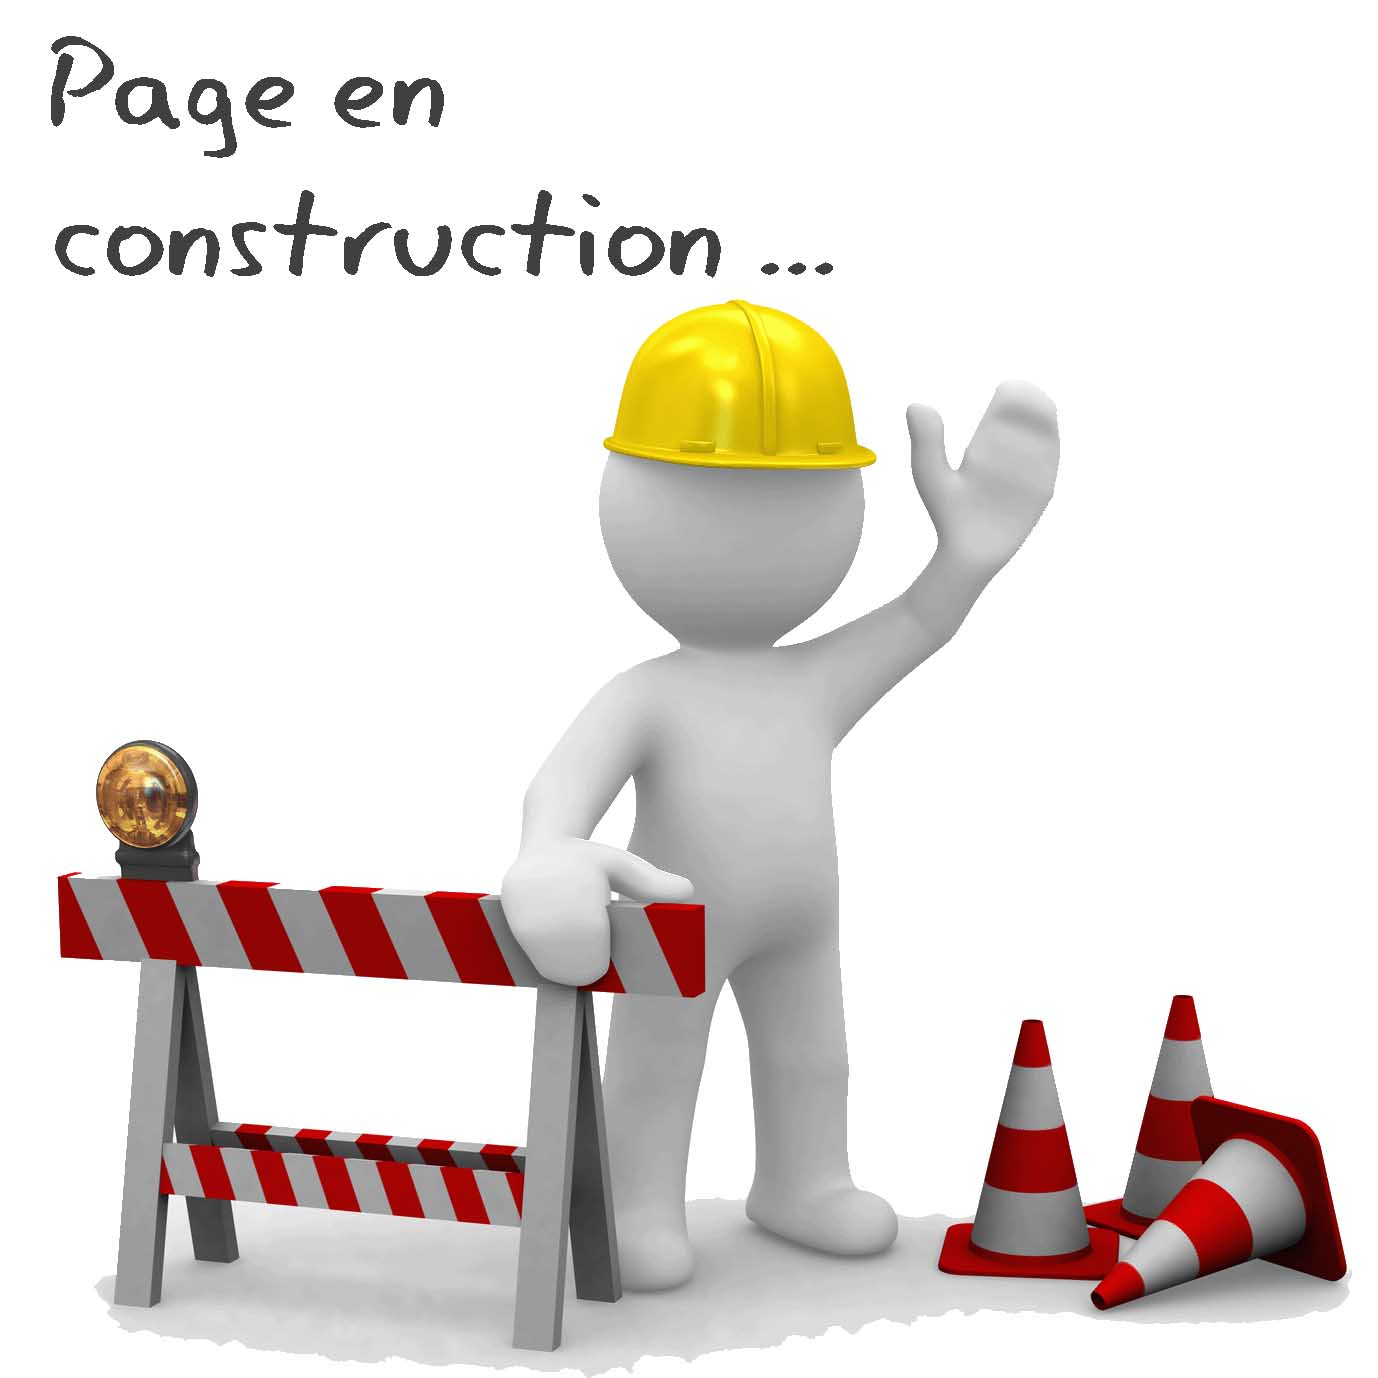 Image 'en construction'